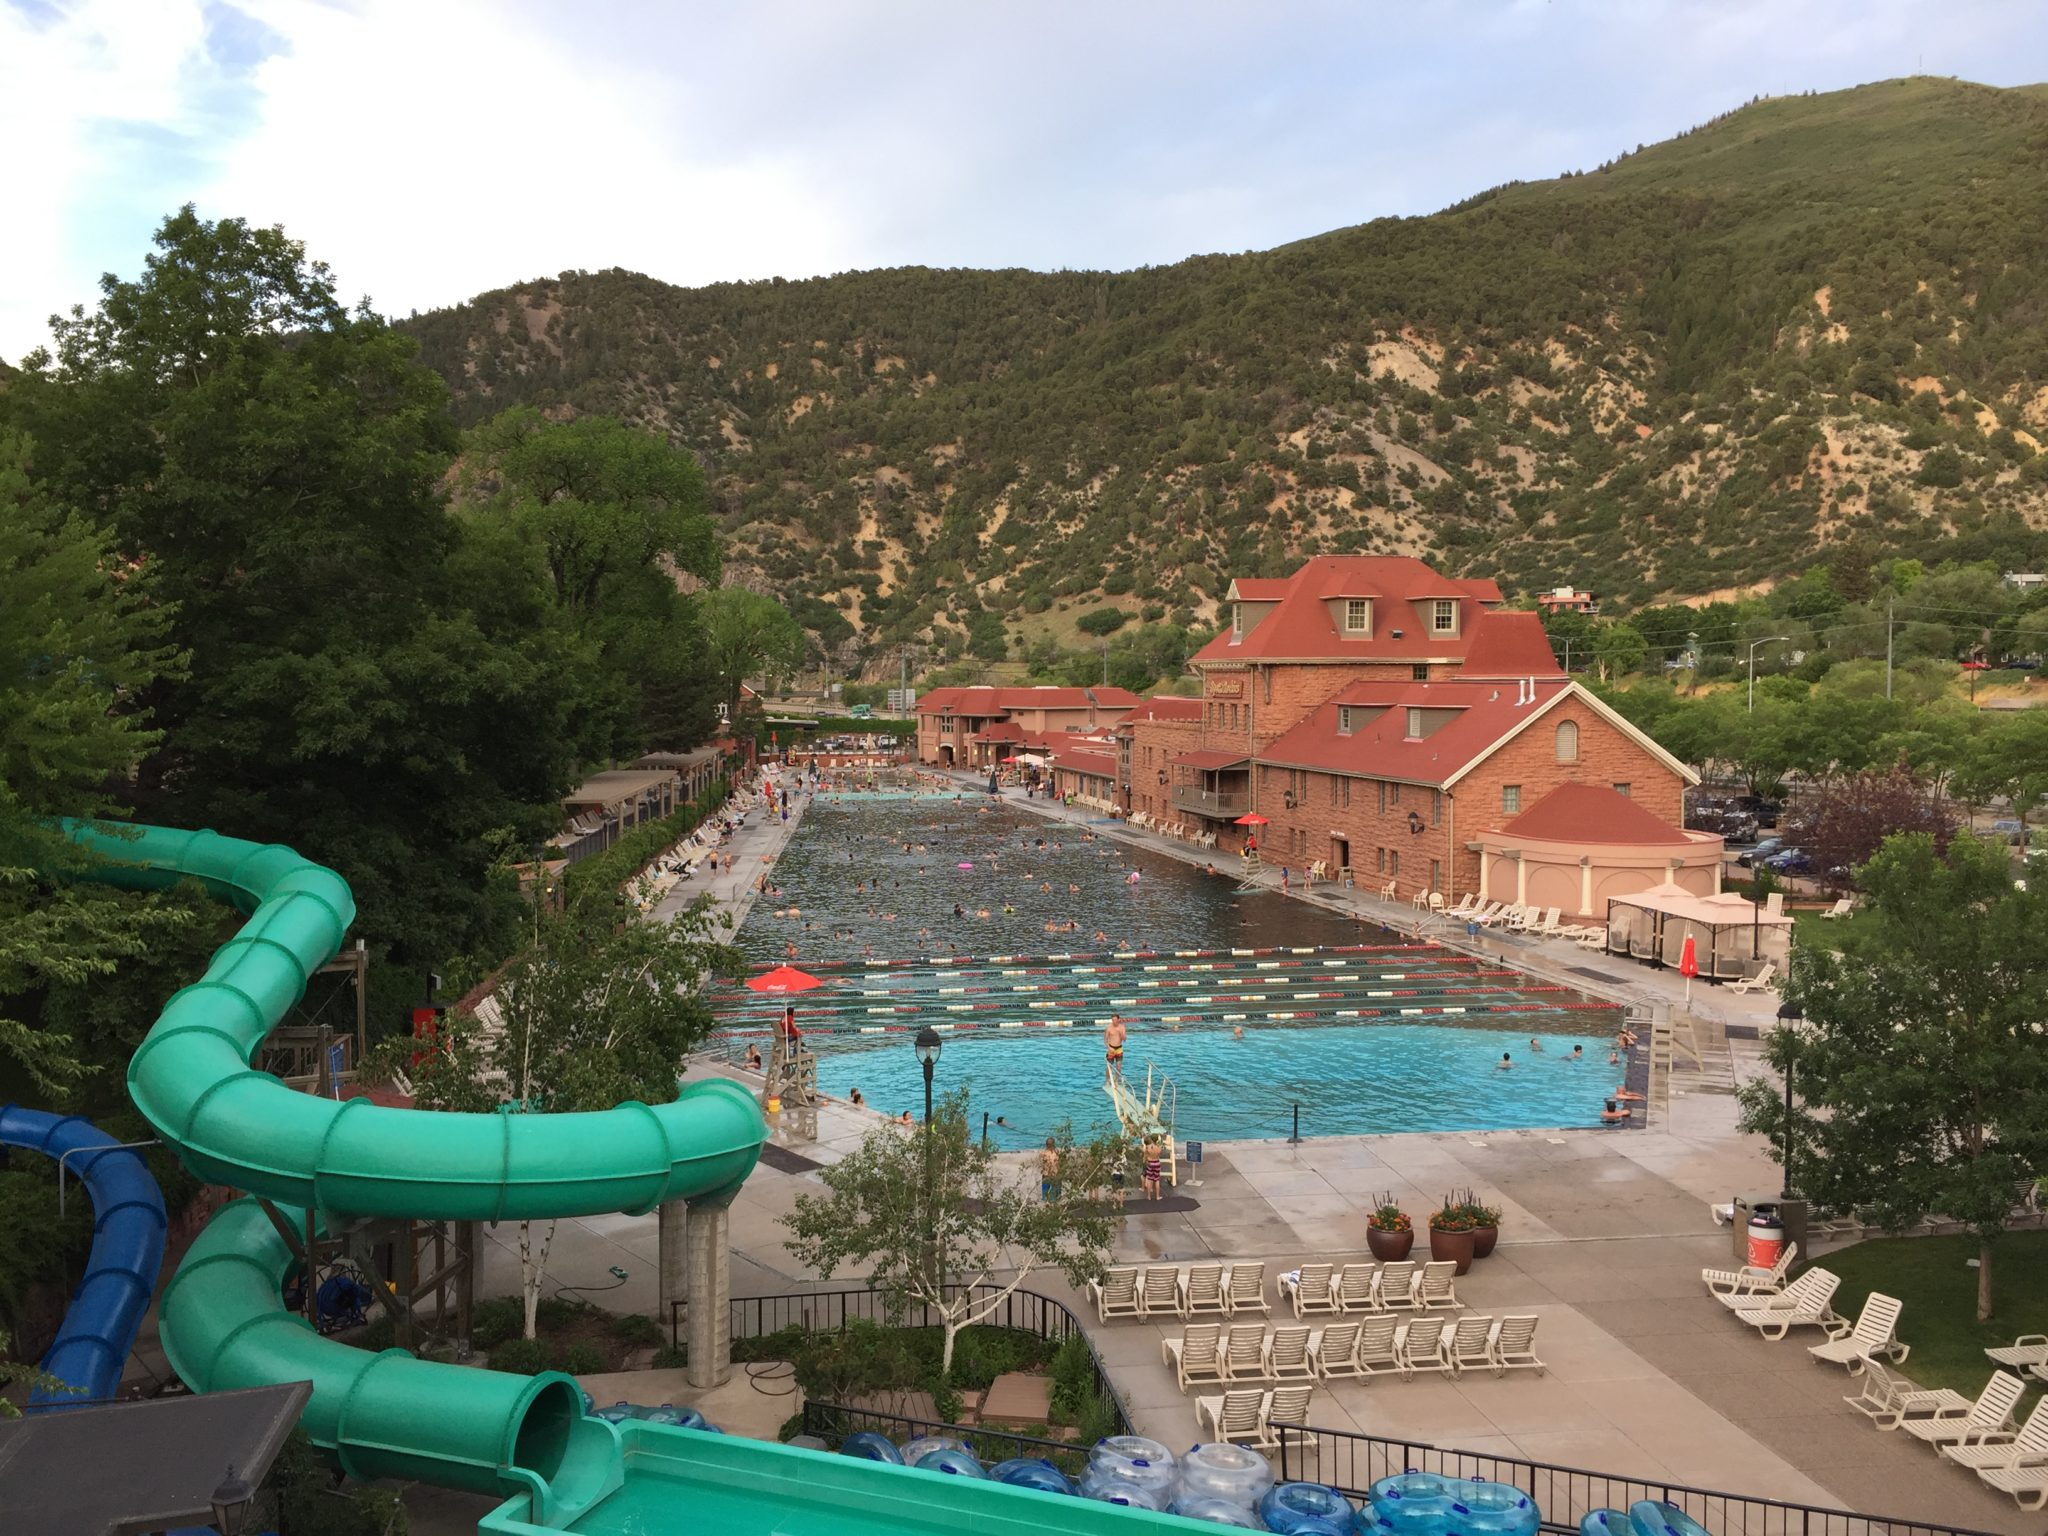 Glenwood Springs Resort Hotel Pool